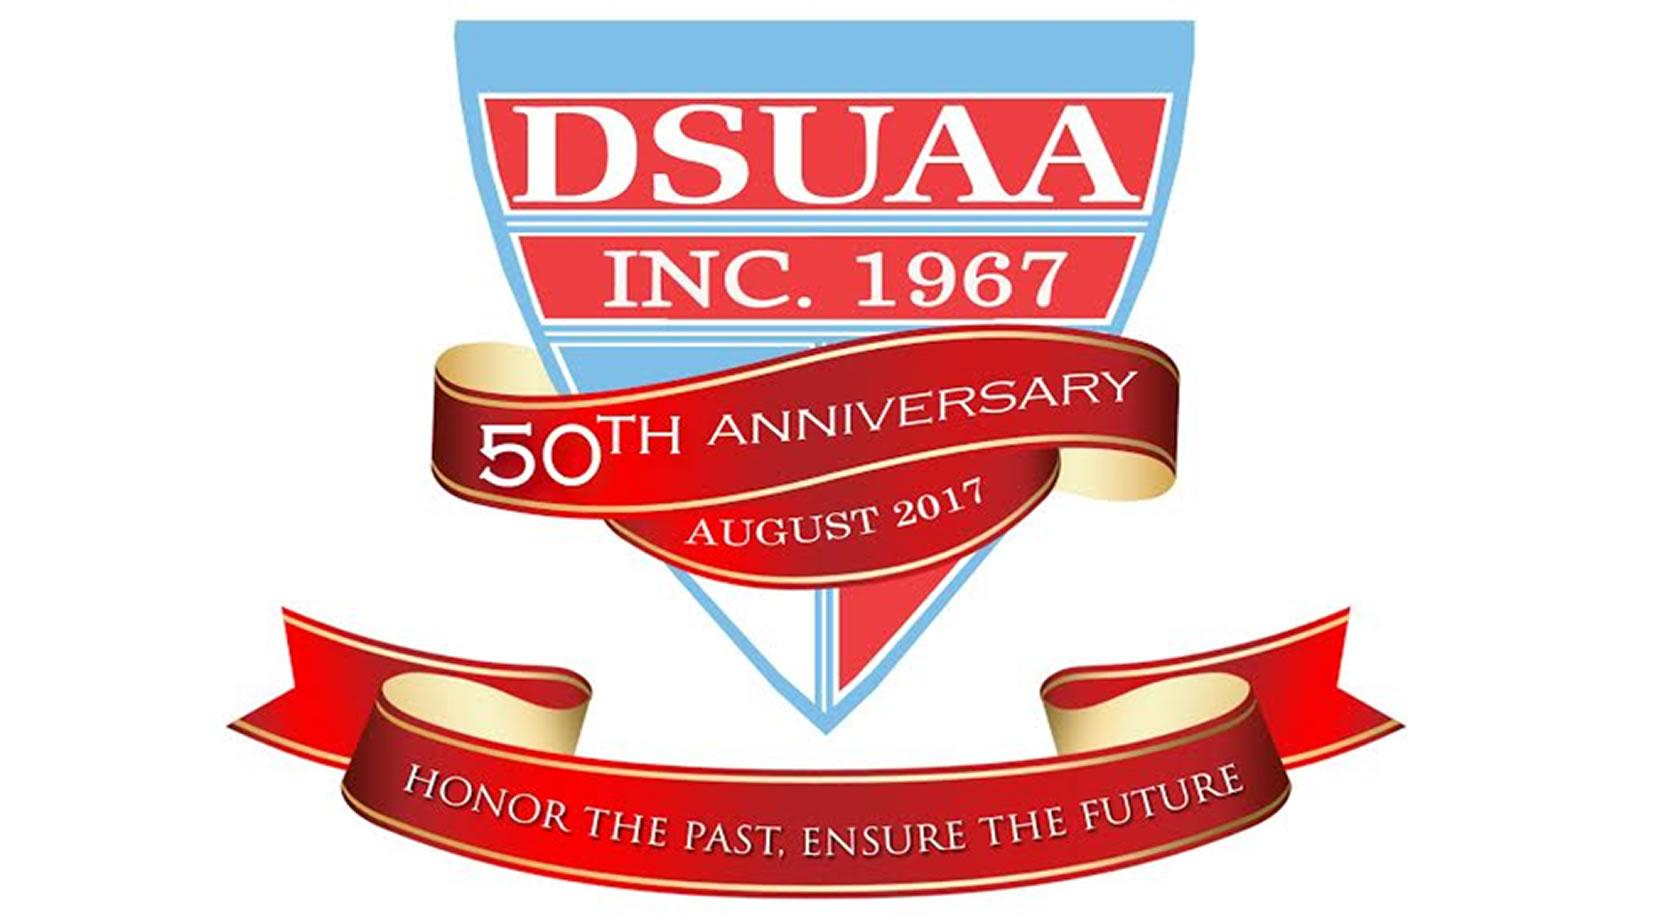 Delaware State University Alumni Association Celebrating the 50th Anniversary of the DSUAA Charter.